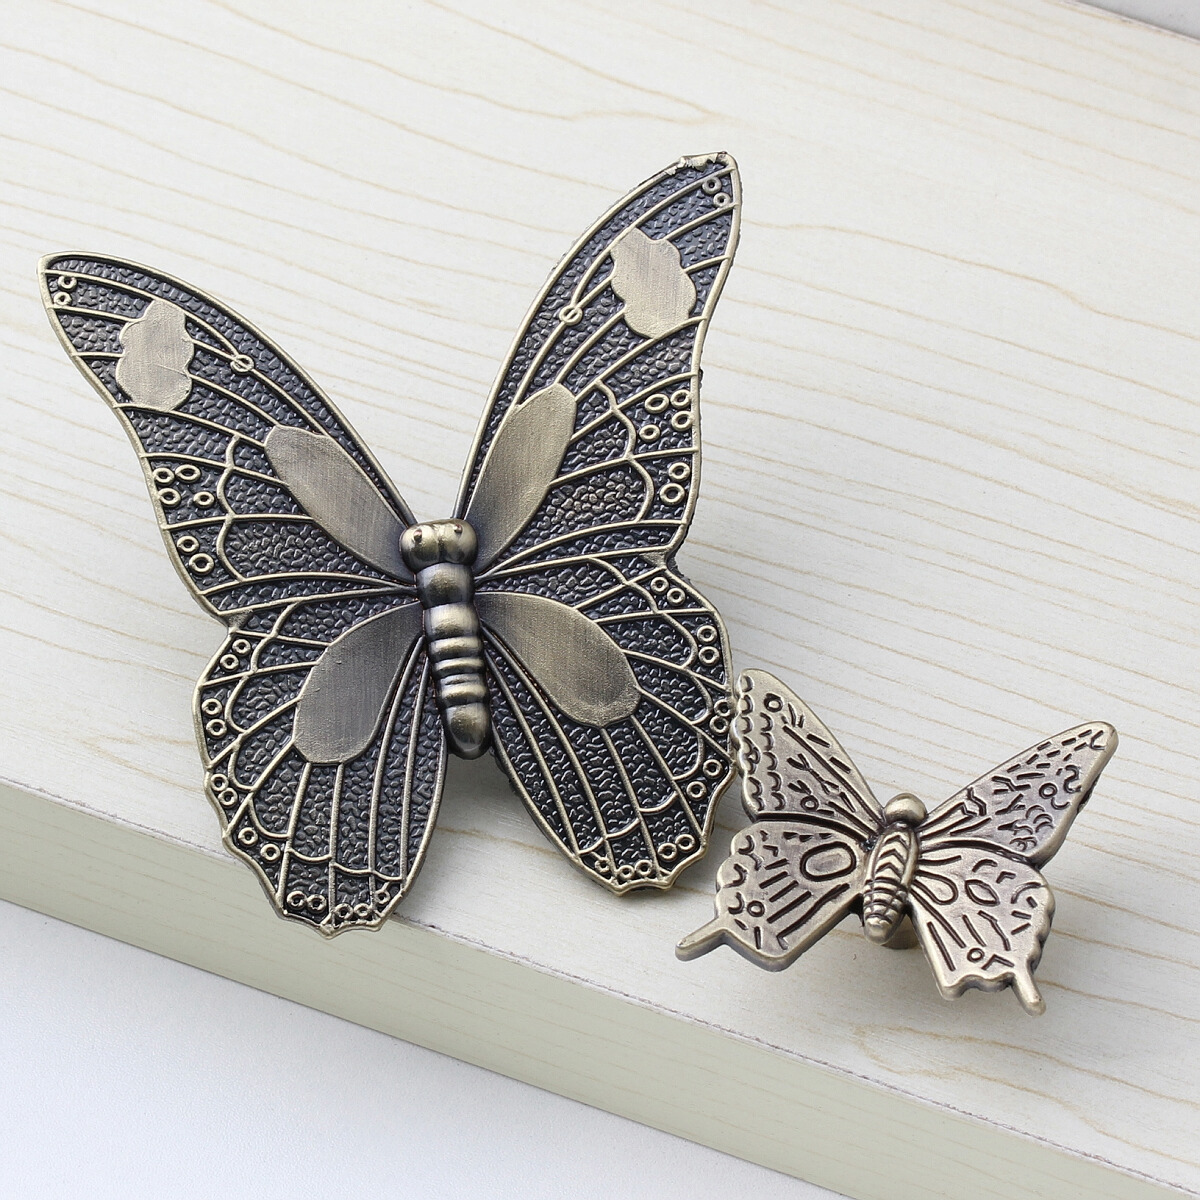 Antique Bronze Butterfly Village Furniture Door Handle Shoe Cabinet Drawer Knobs Children Bedroom Room Lovely Decorative Pulls 50pcs ynizhur 30mm x 22mm bronze mini butterfly door hinges cabinet drawer jewellery box hinge with screw for furniture hardware